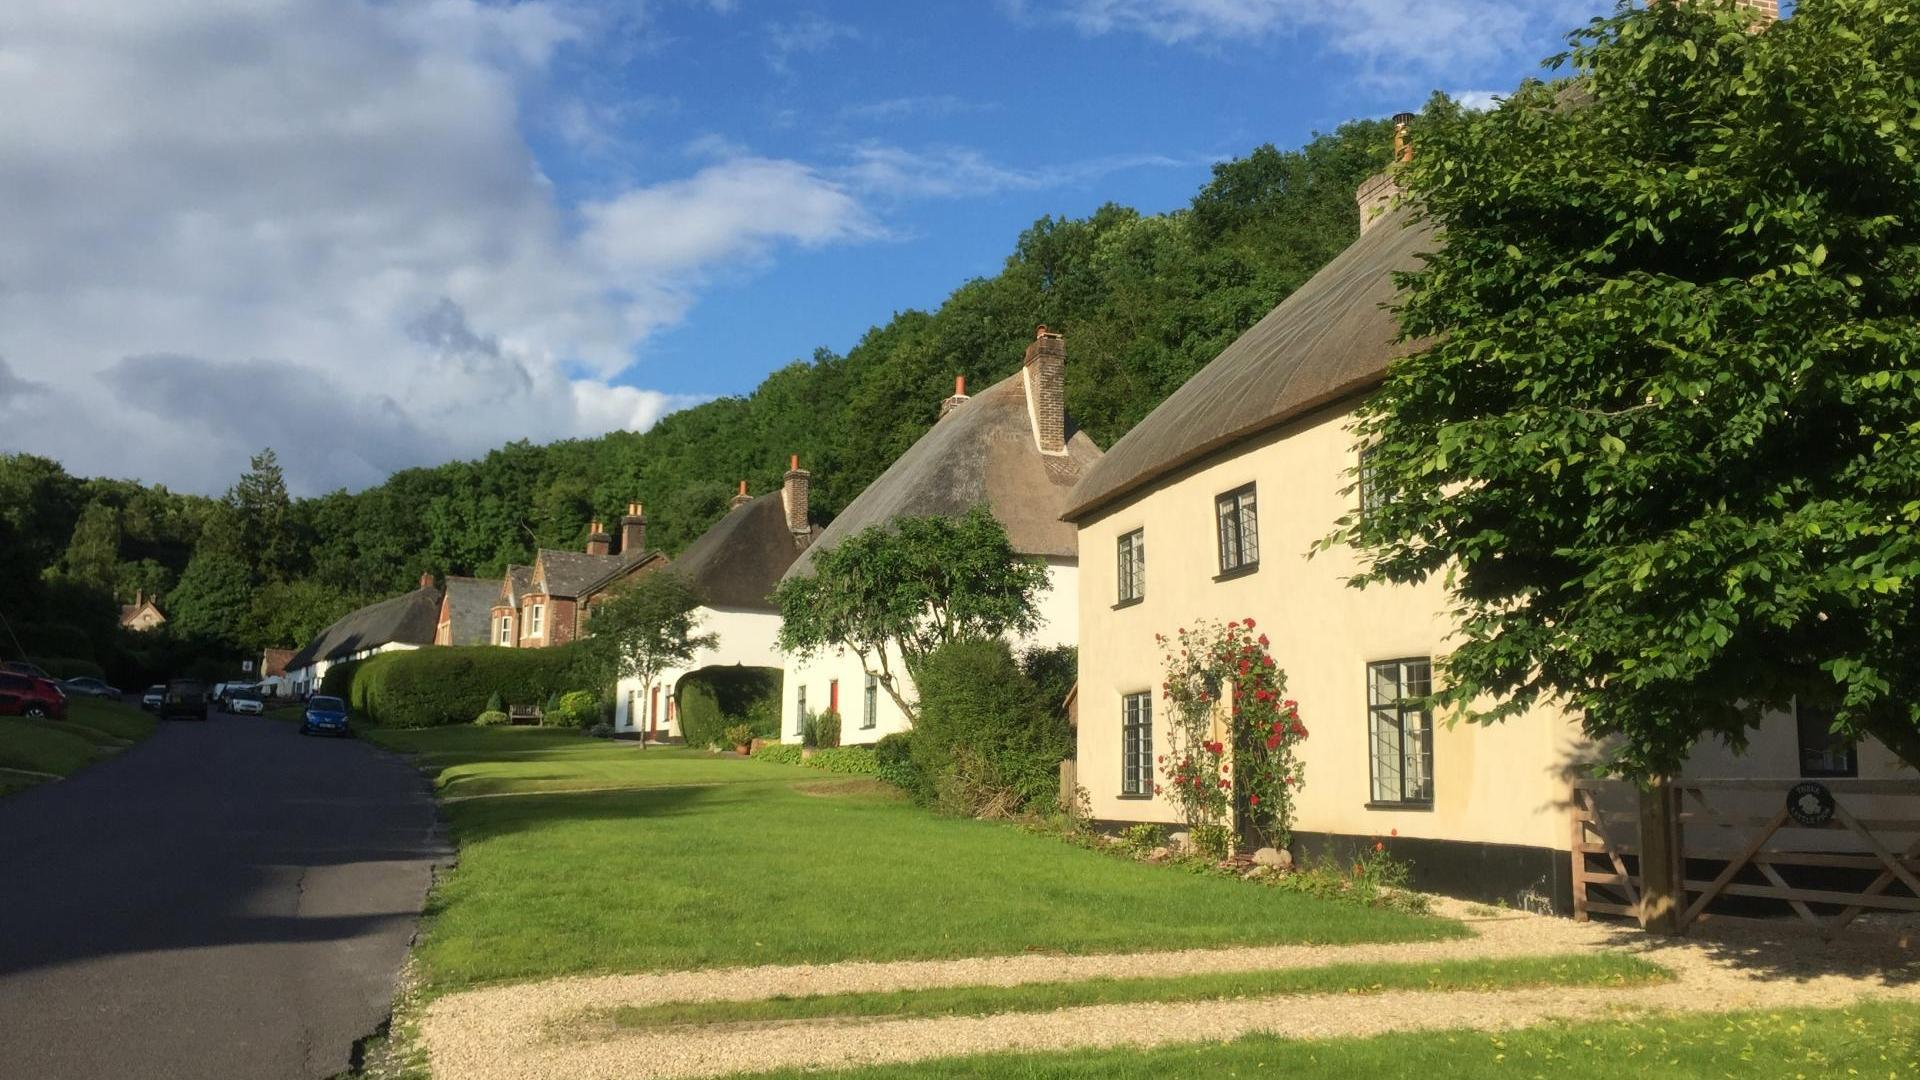 3 bedroom baby and child friendly holiday cottage in Dorset - HSJ